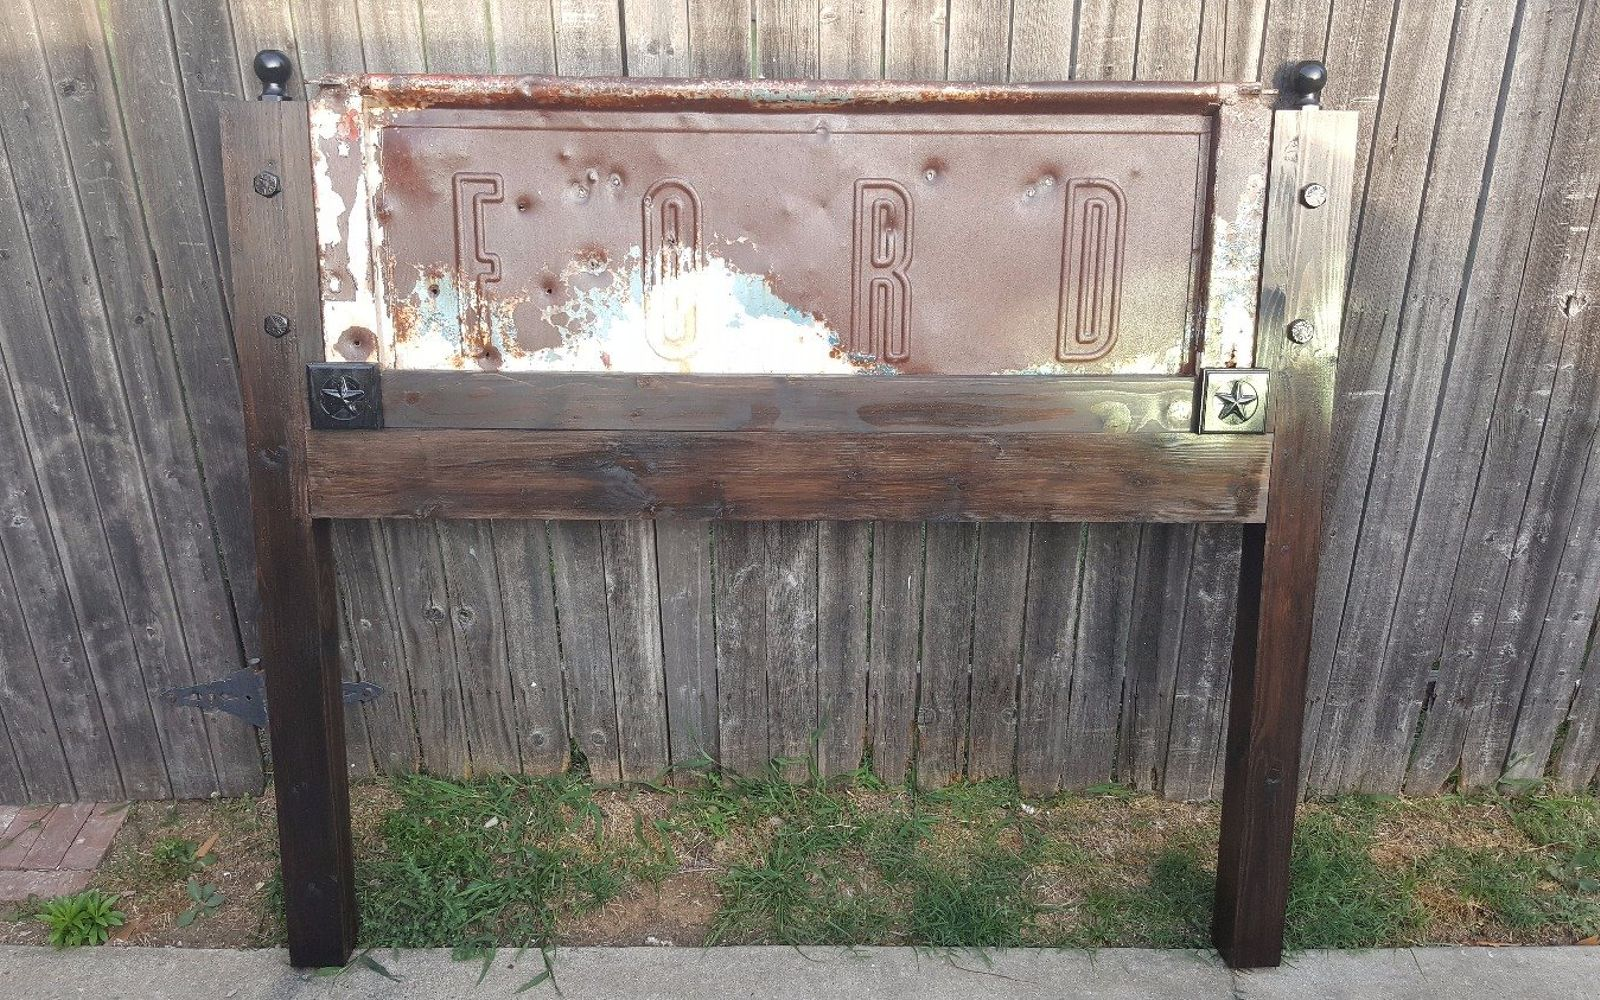 s these are the diy headboard ideas you ve been dreaming of, Repurpose An Old Truck Tailgate